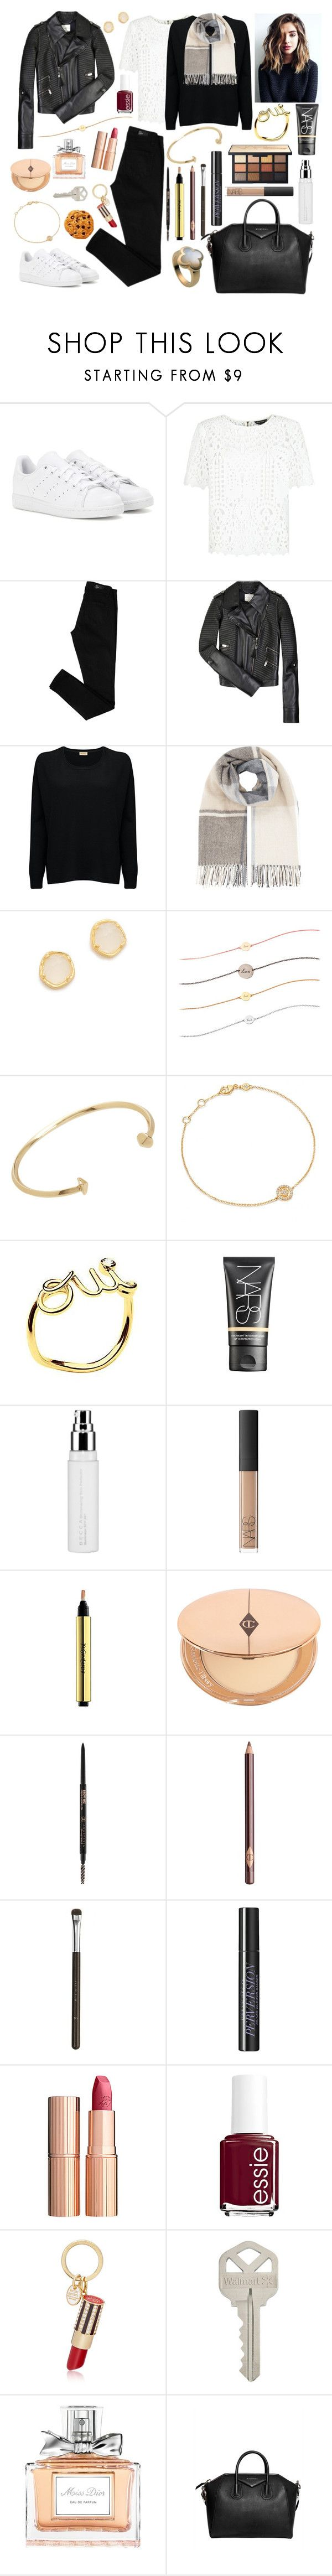 """05-02-2017"" by belledenuit ❤ liked on Polyvore featuring adidas, New Look, Paige Denim, CÉLINE, American Vintage, Accessorize, Tai, Astley Clarke, Jennifer Fisher and Van Cleef & Arpels"